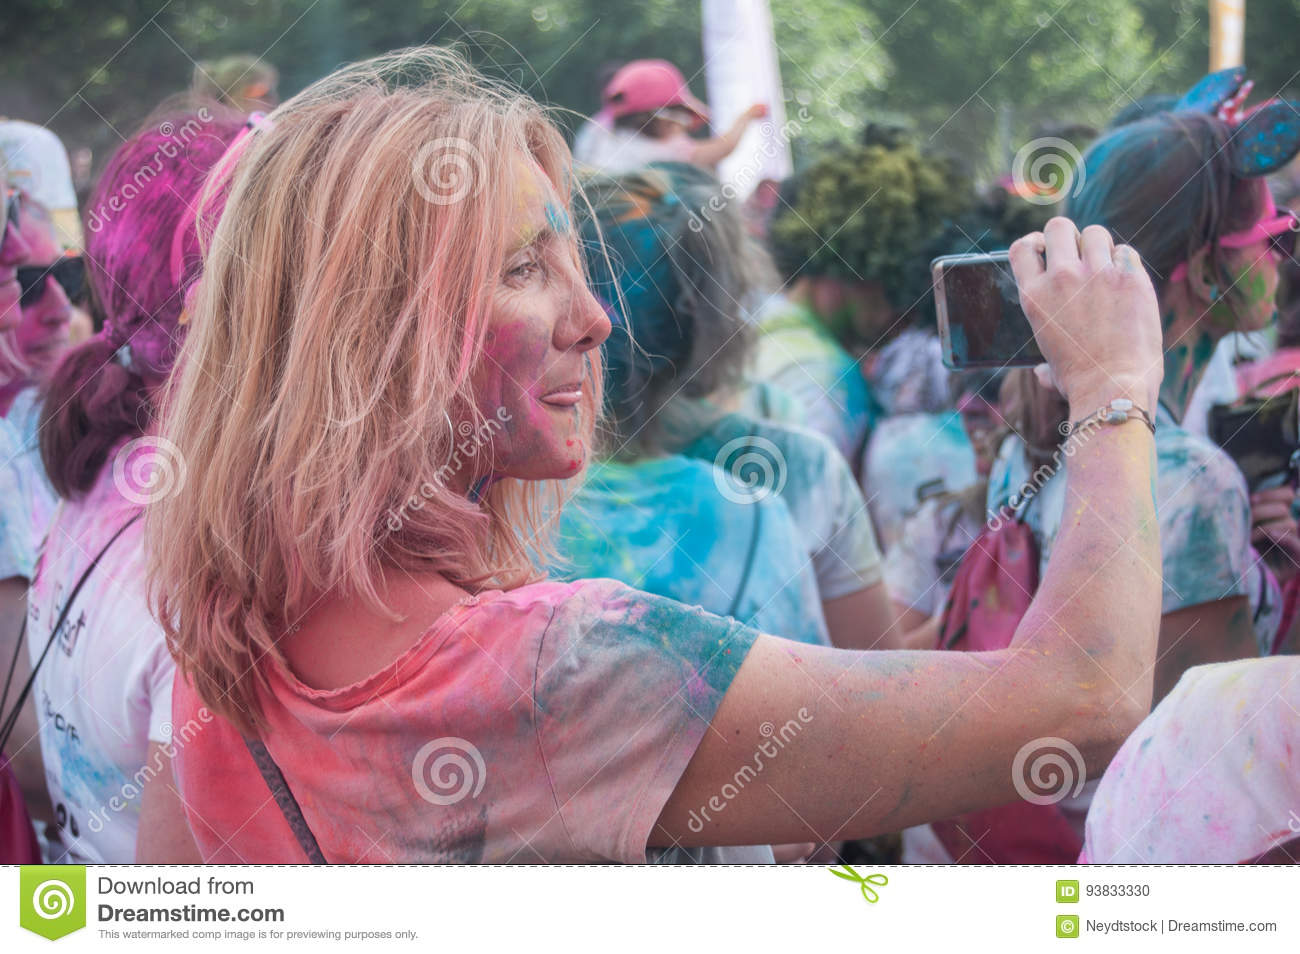 Portrait of woman taking a picture with phone at Colore Mulhouse 2017